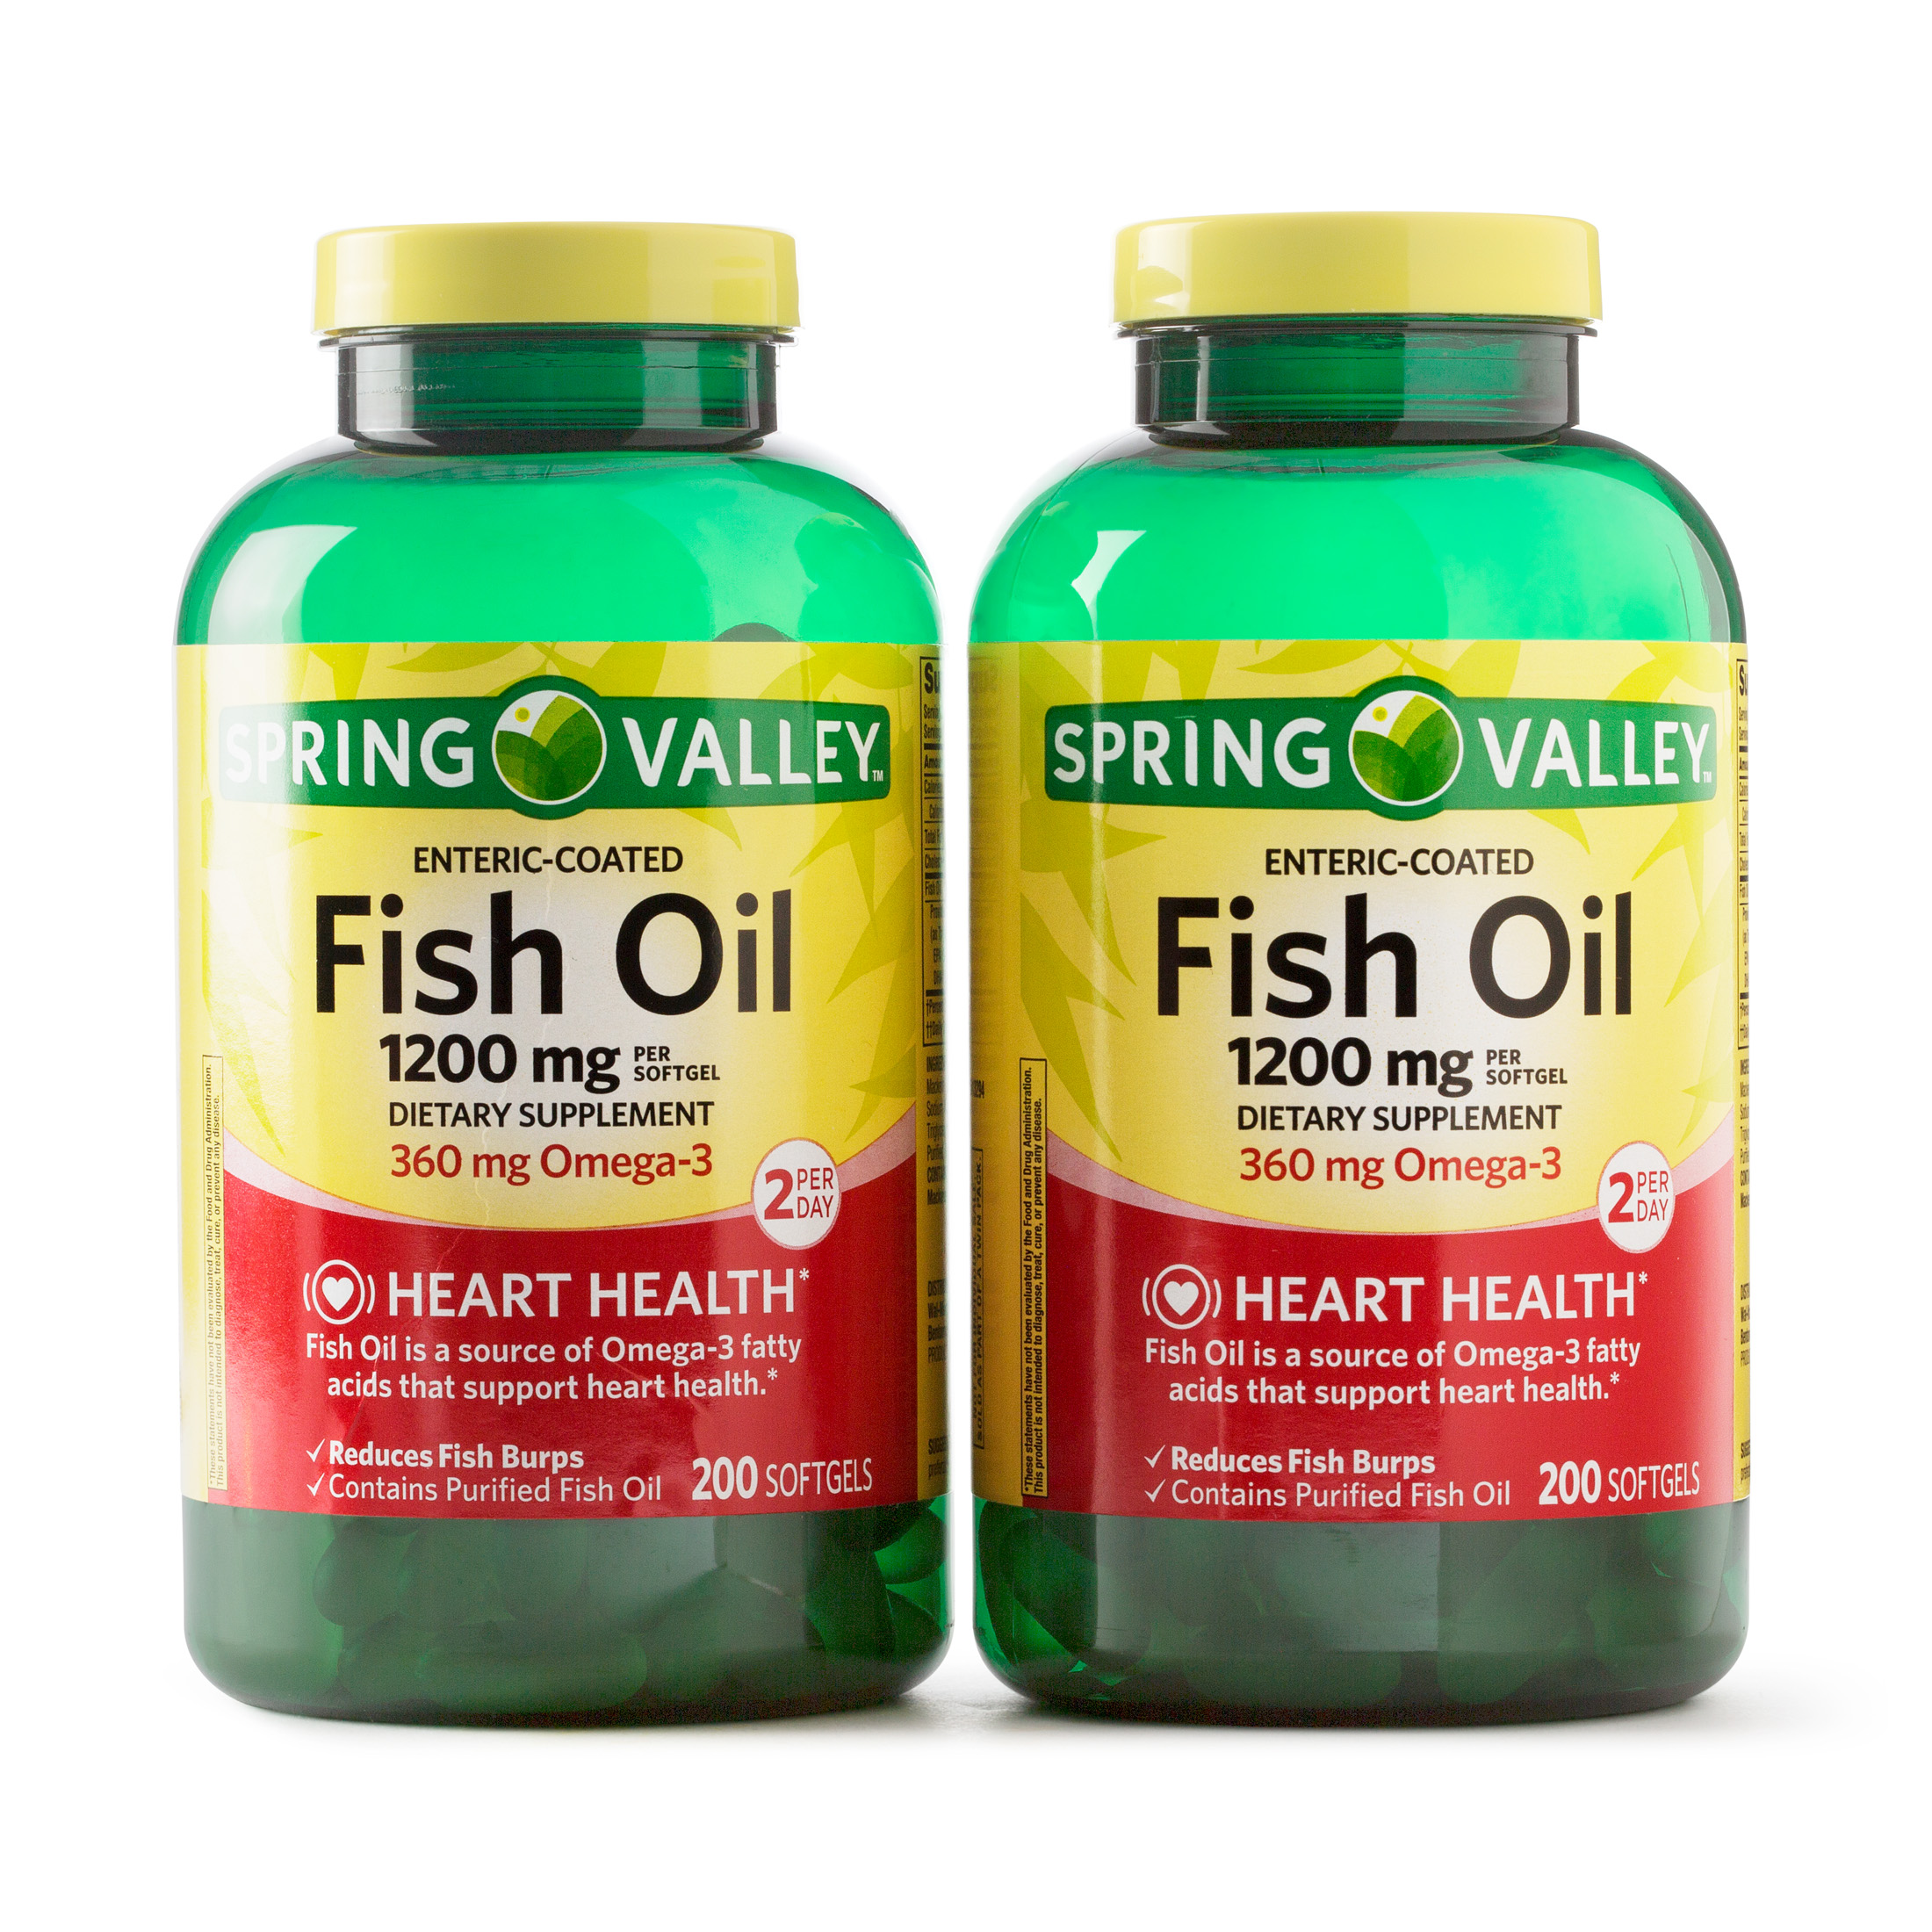 Spring Valley Enteric-Coated Fish Oil Omega-3 Supplement, 1200mg, 400 Softgel Twin